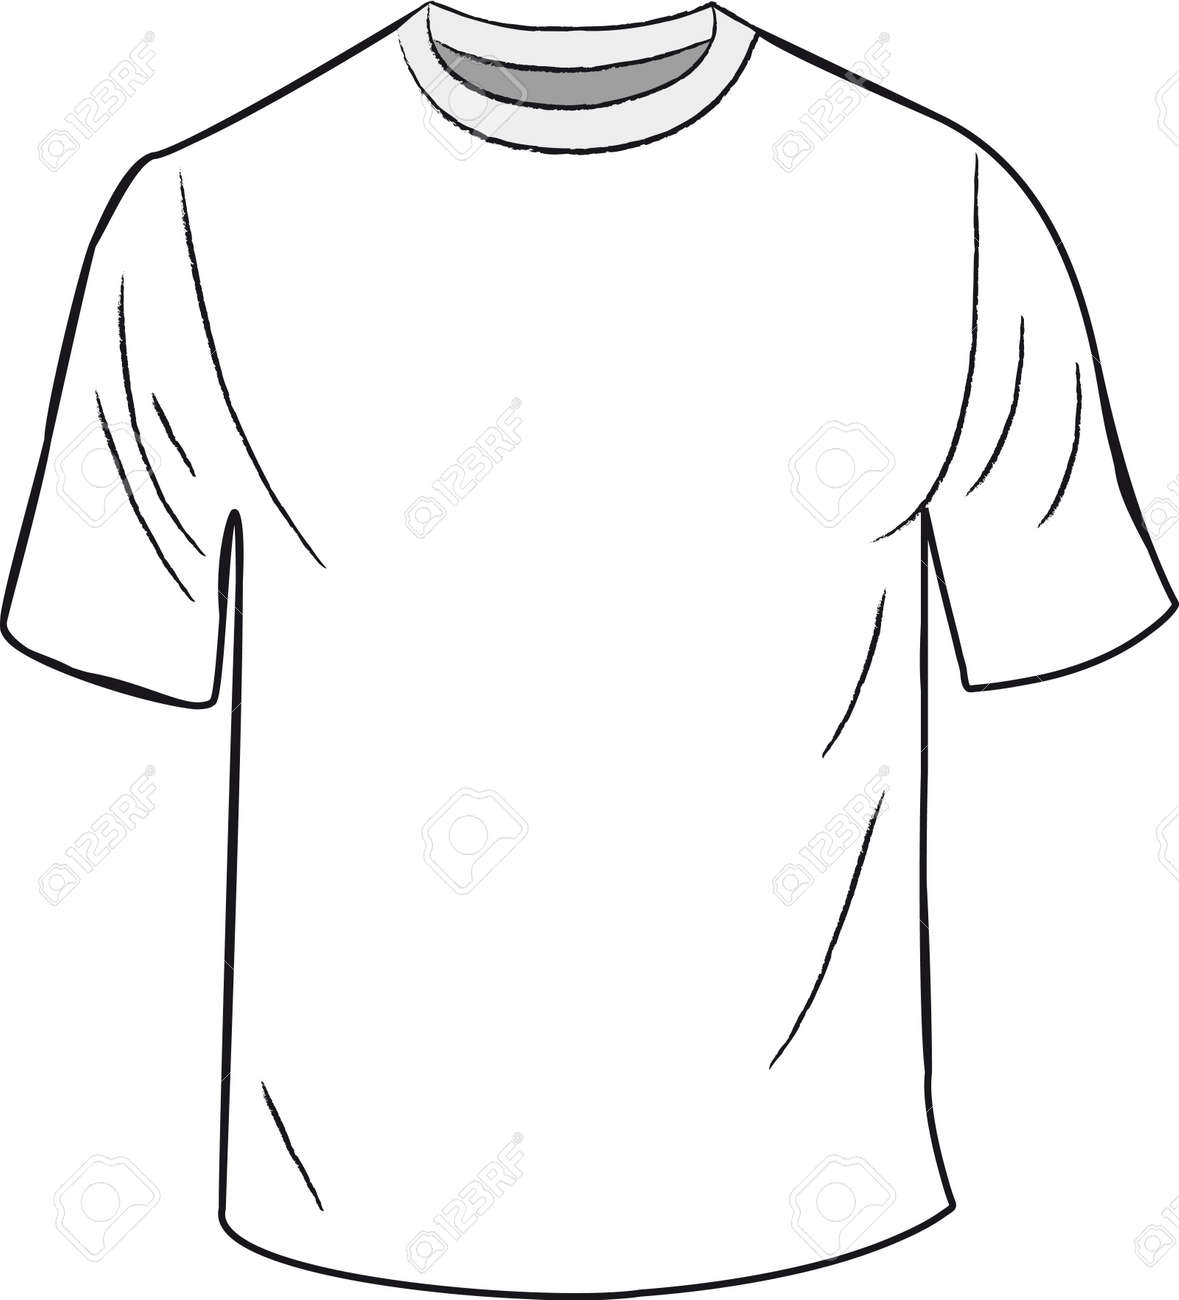 Shirt design